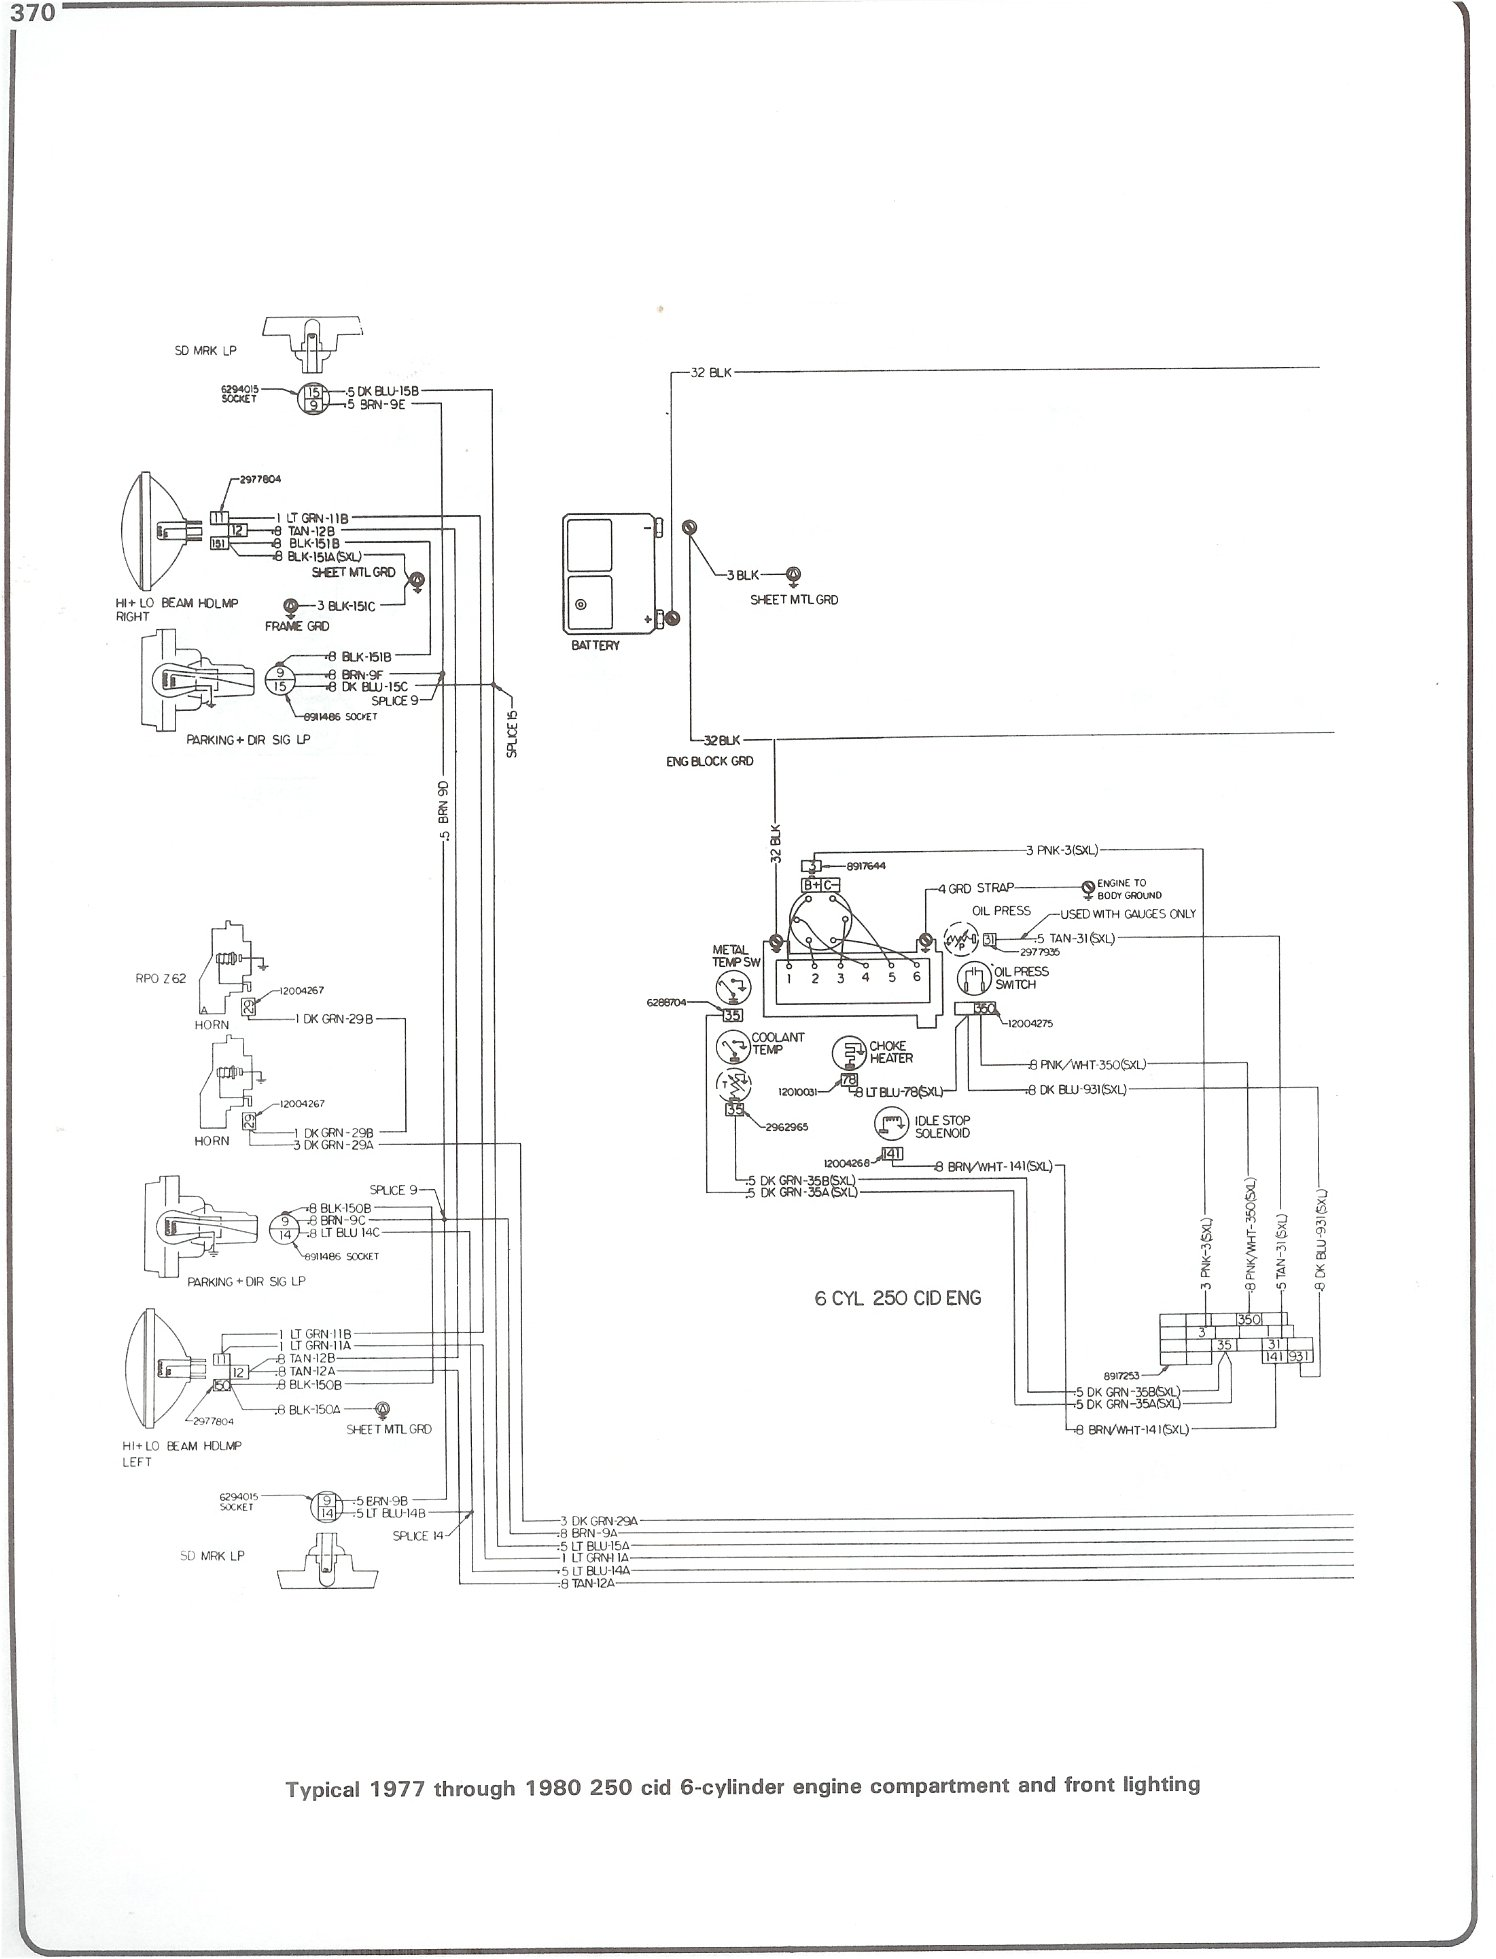 honda 250 and 300 model c72c77 electrical wiring diagram picture 1991 Suburban Wiring Diagram 85 suburban wiring diagram wiring diagramcomplete 73 87 wiring diagrams77 80 250 i6 engine wiring and